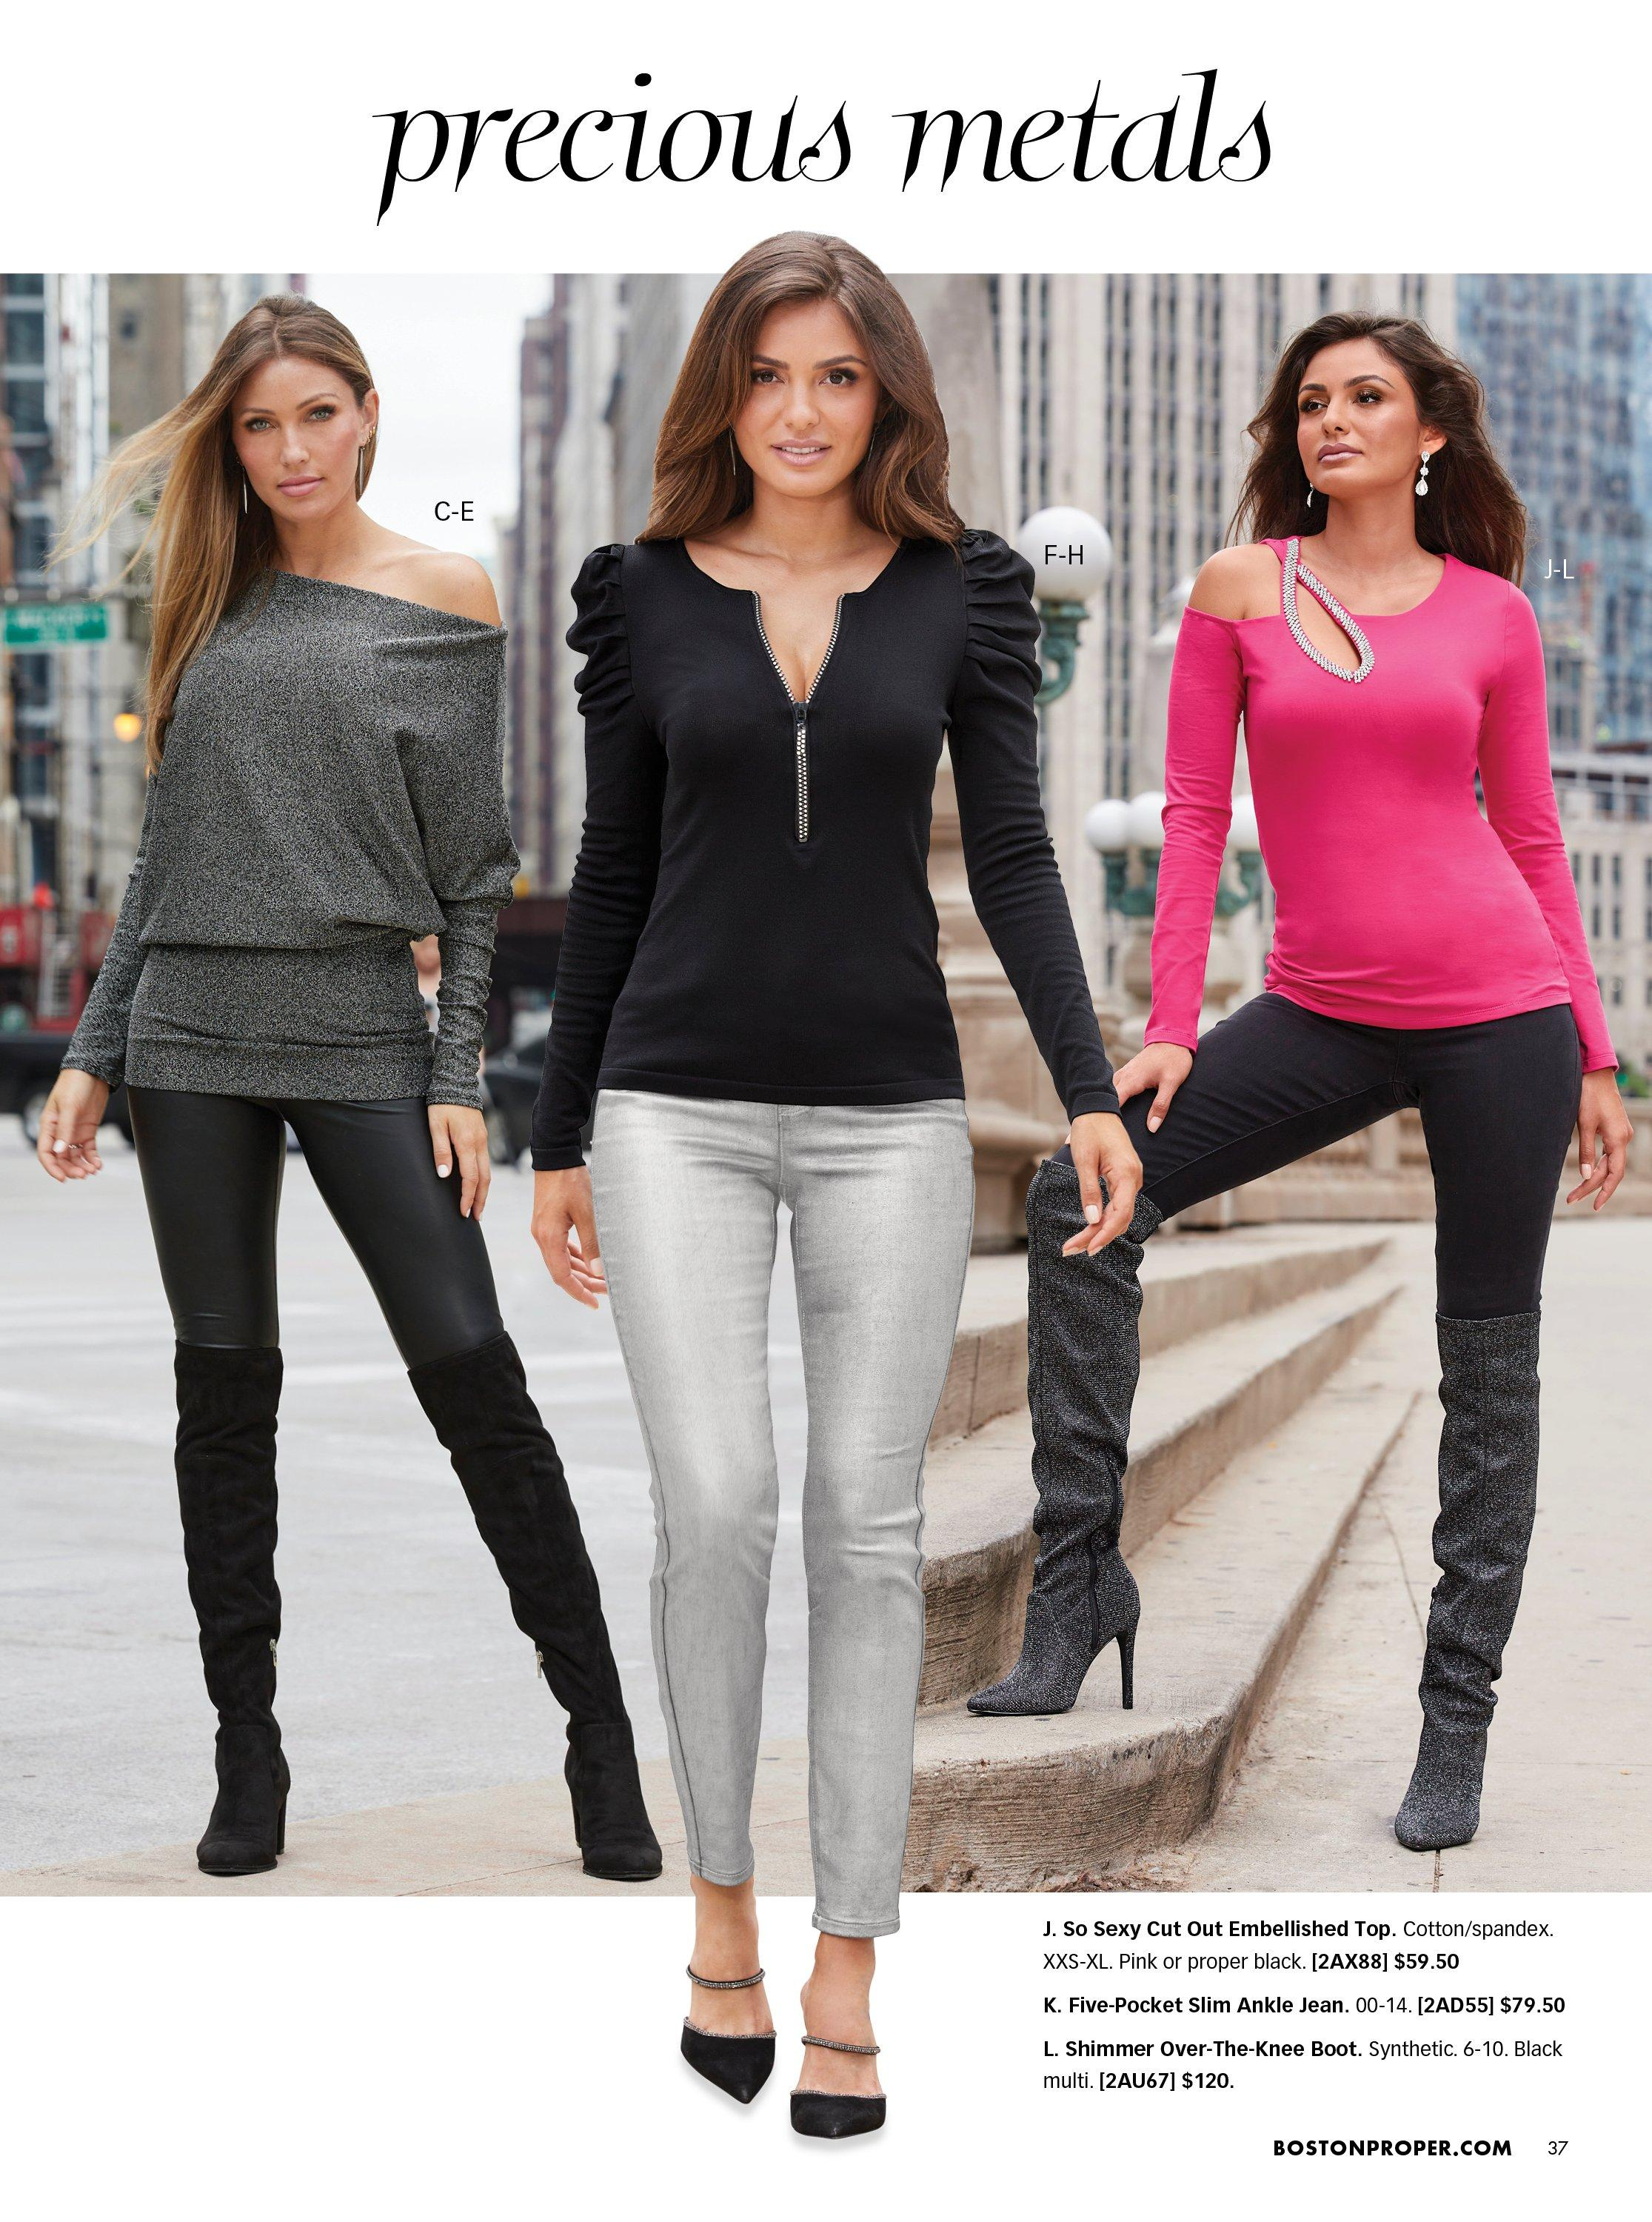 left model wearing a gray metallic off-the-shoulder banded top, black faux-leather leggings, and black over-the-knee boots. middle model wearing a black puff-sleeve quarter zip top, silver metallic coated jeans, and black heeled mule shoes. right model wearing a pink long-sleeve cutout with silver rhinestone embellishments, black pants, and shimmer black over-the-knee boots.